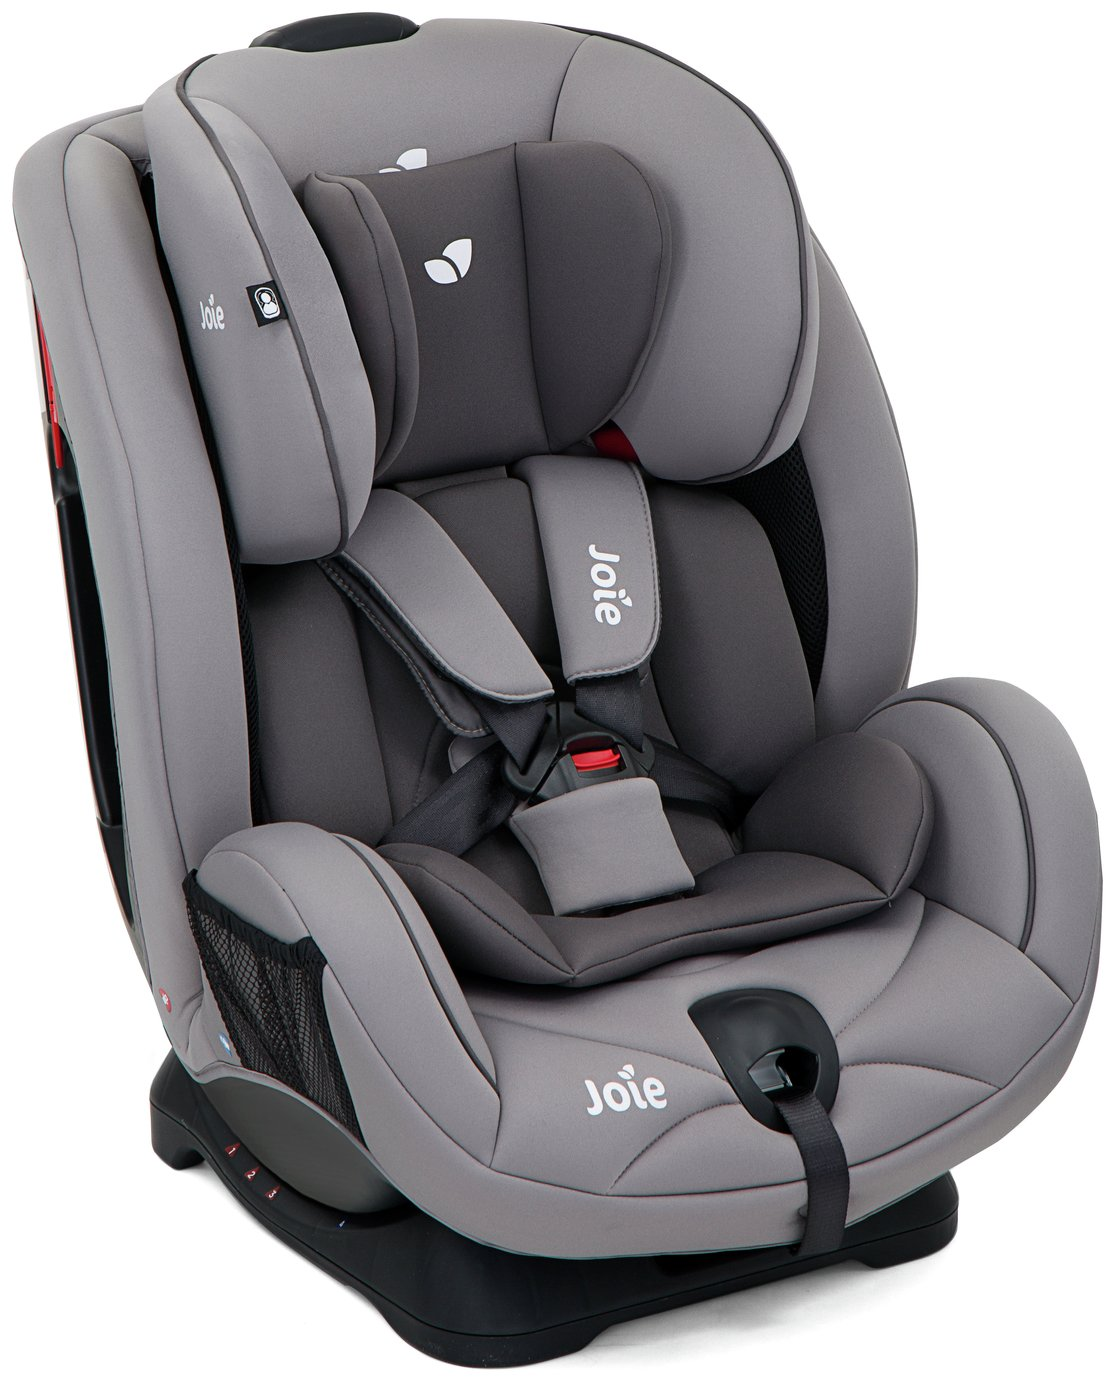 Joie Stages Group 0+/1/2 Car Seat - Grey